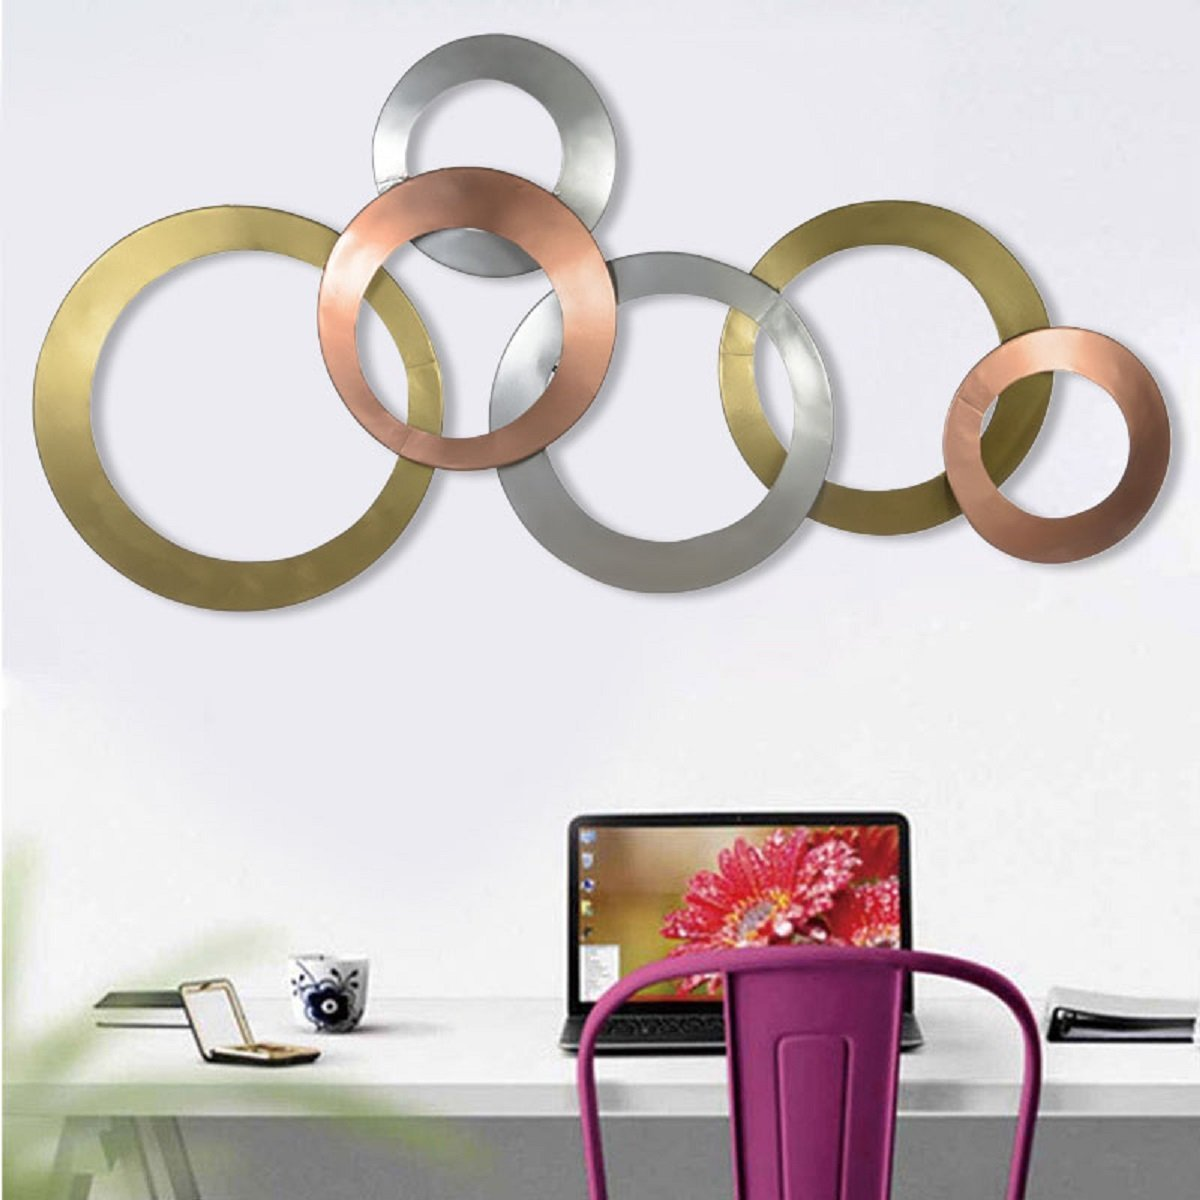 Buy Collectible India Metal Multicolor Ring Wall Hanging Art Decorative Sculpture Modern Arts Living Room Bedroom Office Decor Size 37 X 20 Inches Online At Low Prices In India Amazon In